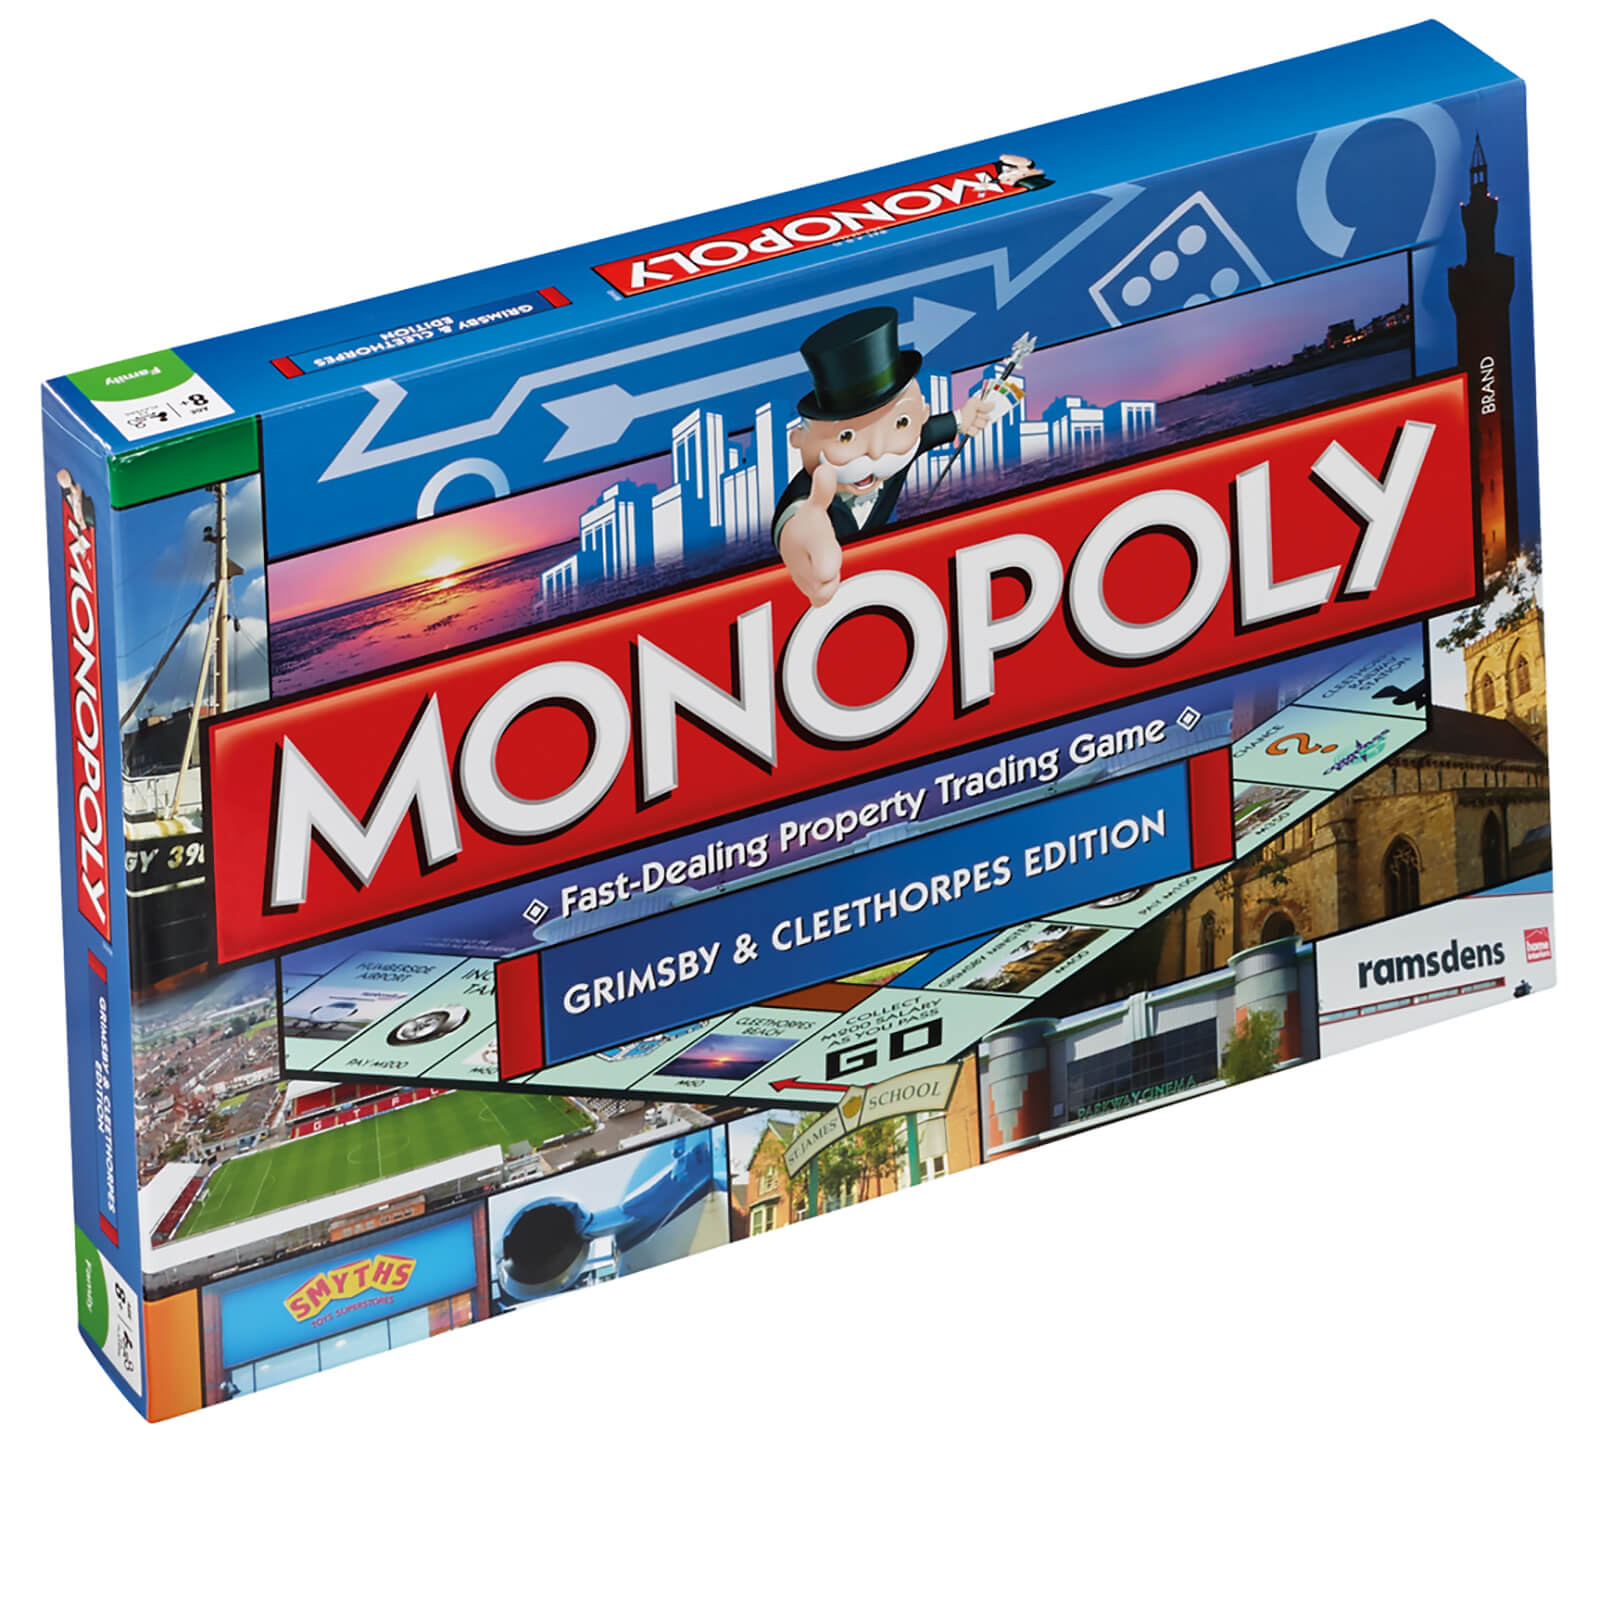 Image of Monopoly Board Game - Grimsby Edition